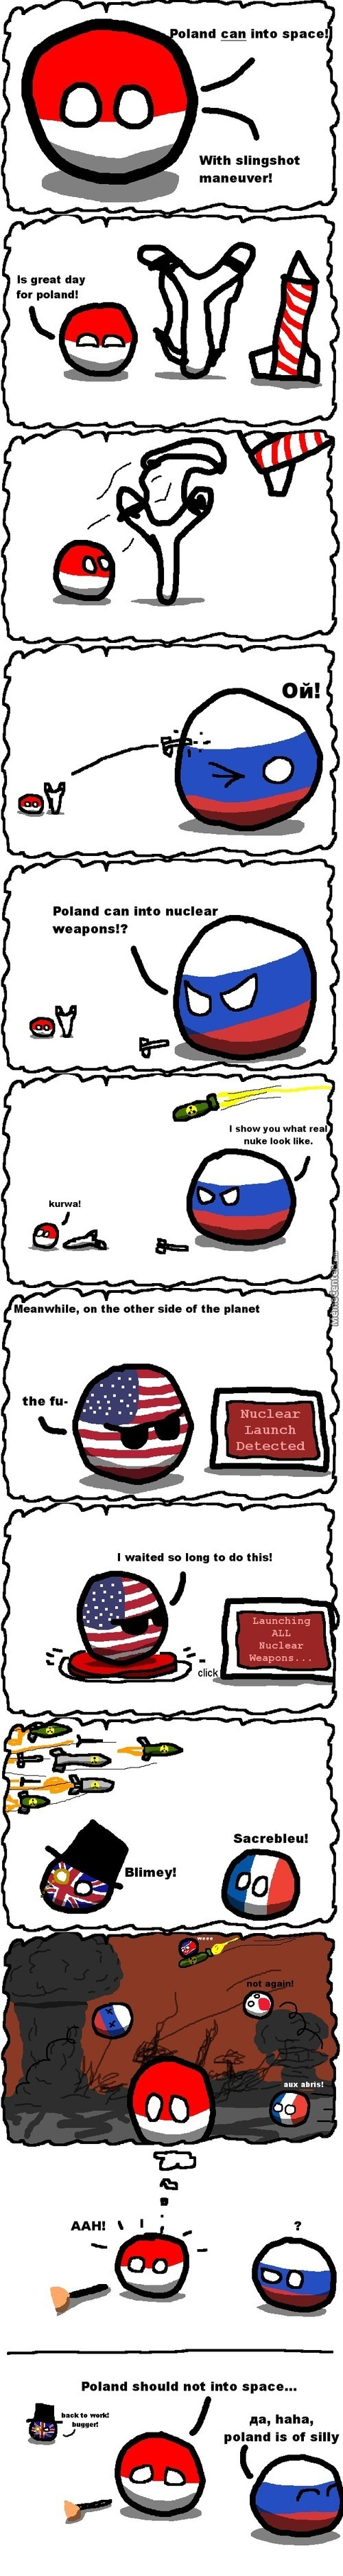 Why Poland Should Not Into Space